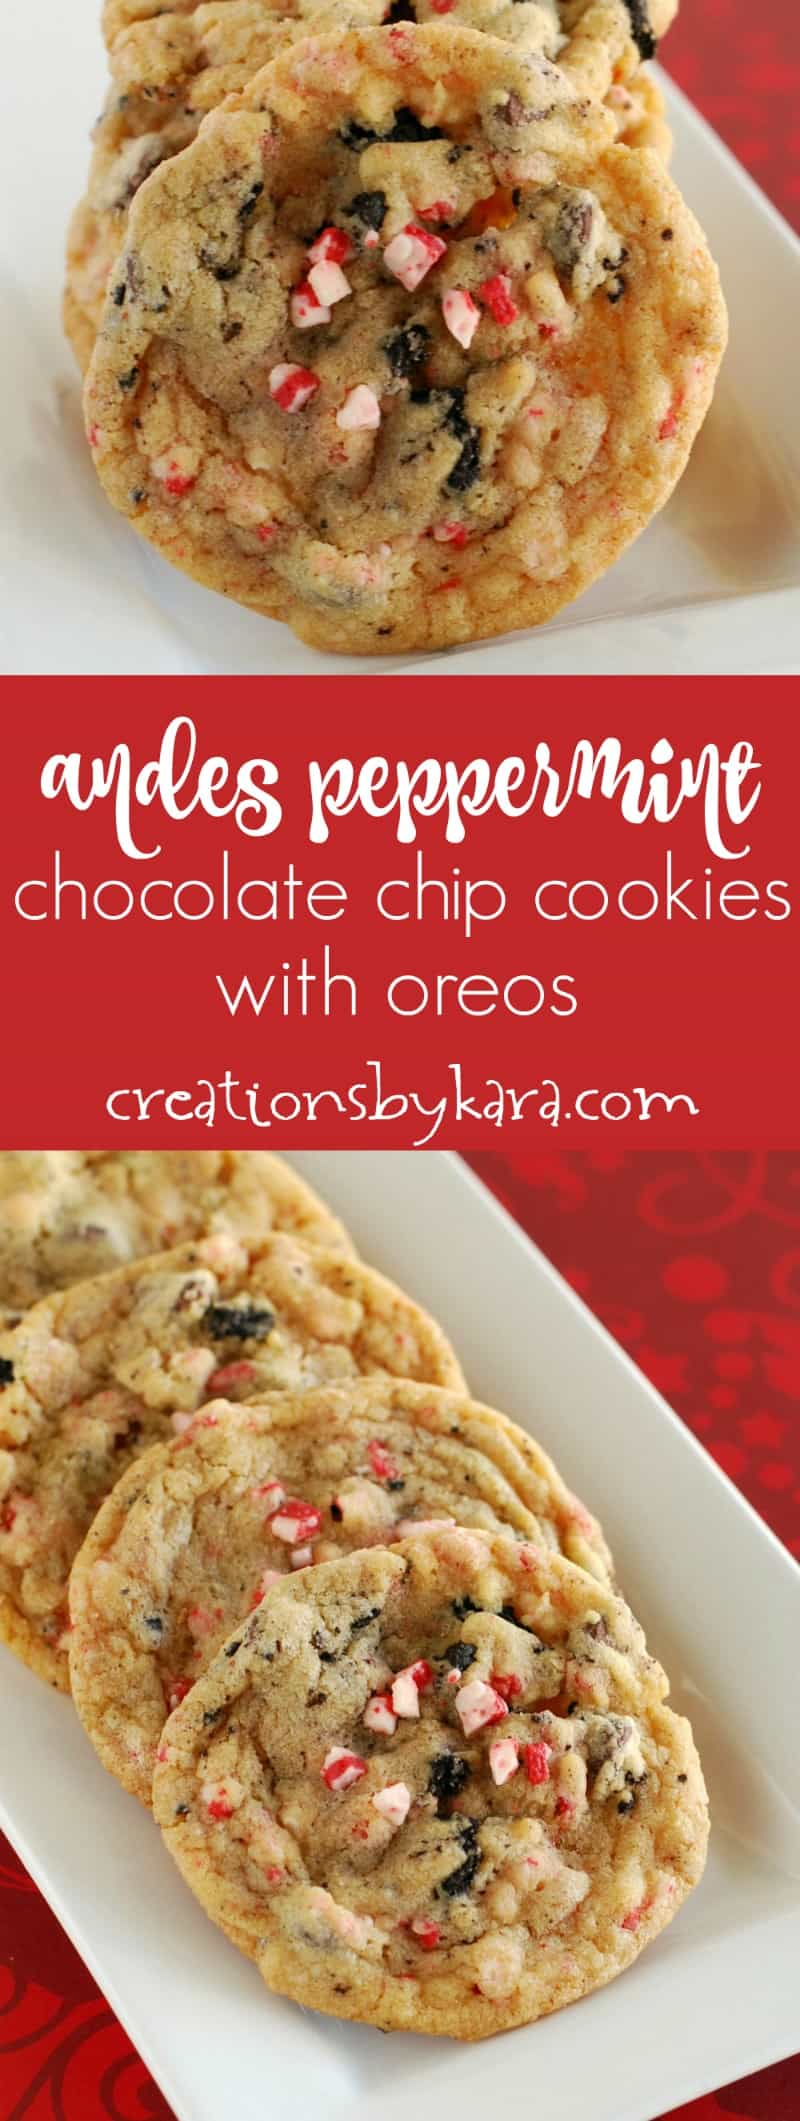 Filled with Oreo pieces, Andes peppermint bits, and chocolate chips, these Peppermint Oreo Cookies will delight all chocolate mint lovers, and are just perfect for Christmas!